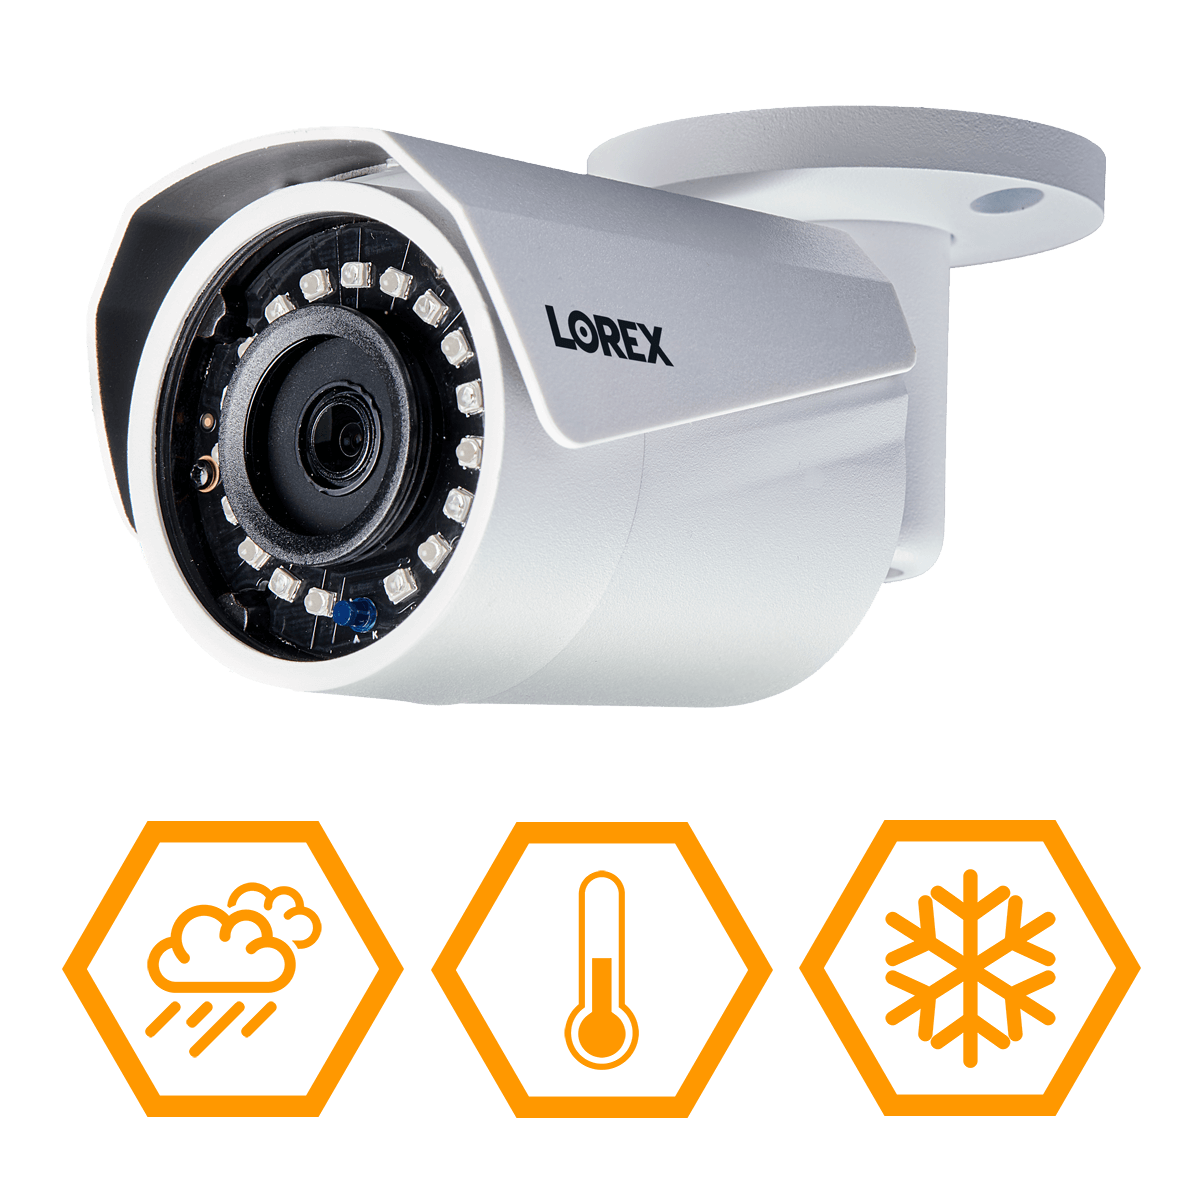 IP66 weatherproof security cameras from Lorex